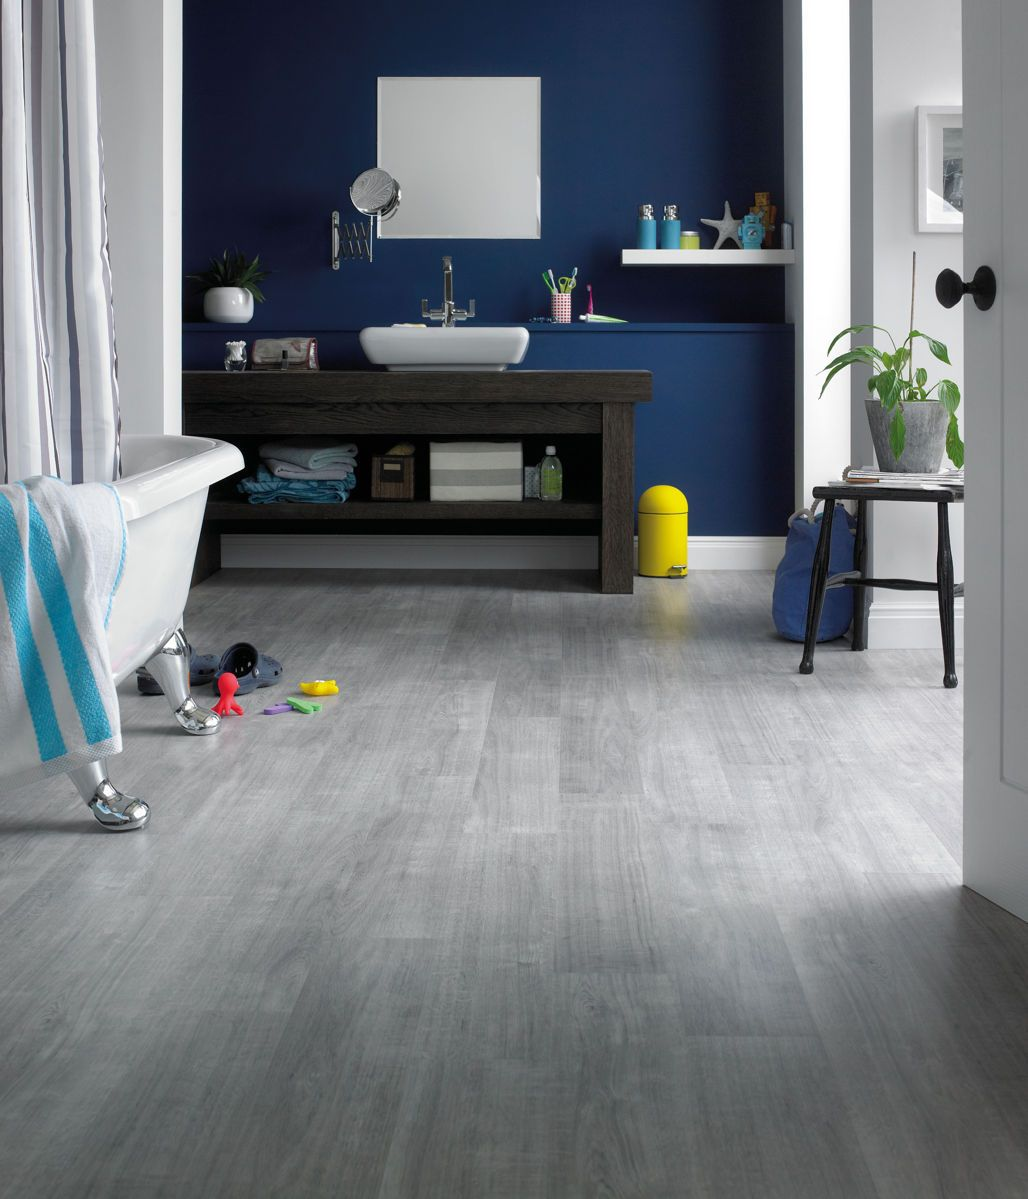 Vinyl Bathroom Floors Karndean Opus Grano Wp311 Vinyl Flooring Decor Pinterest